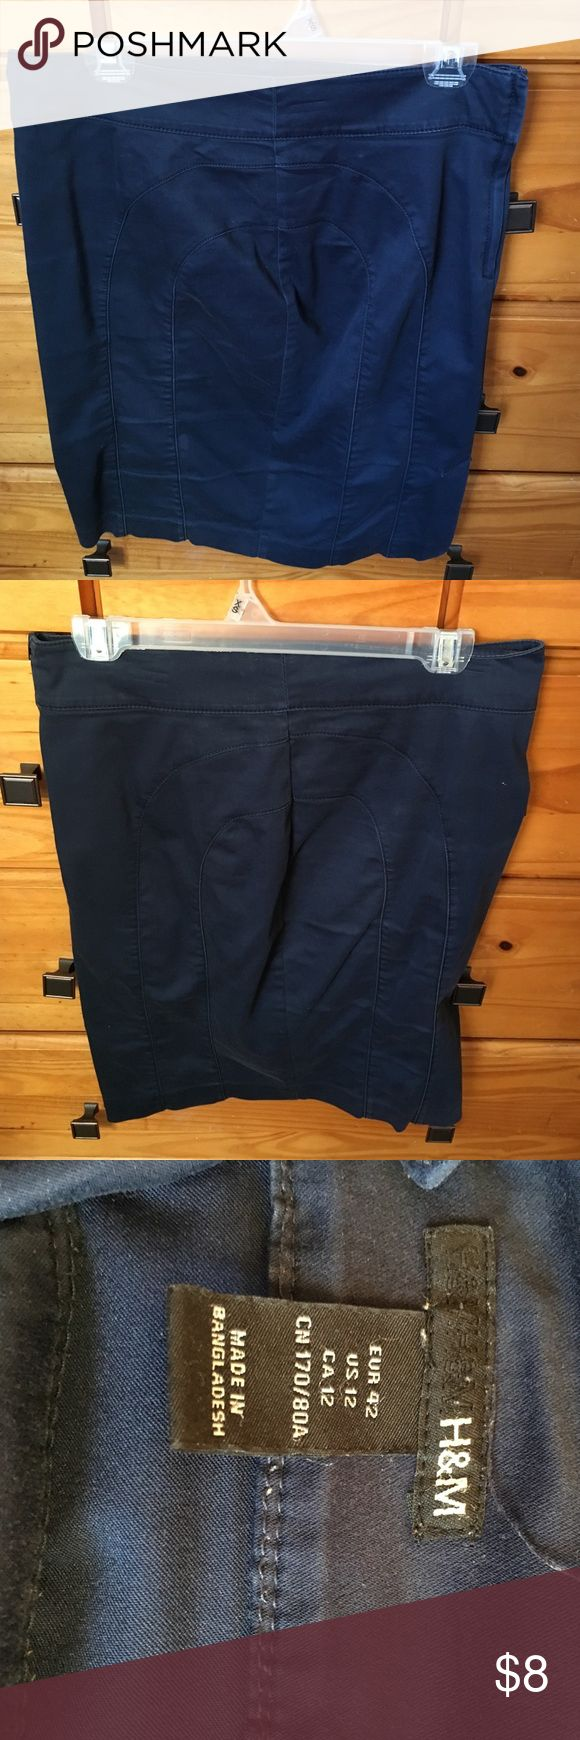 H&M Navy Blue Knee Length Pencil Skirt Navy blue knee length pencil skirt. Lightly used. Fits nicely. H&M Skirts Pencil